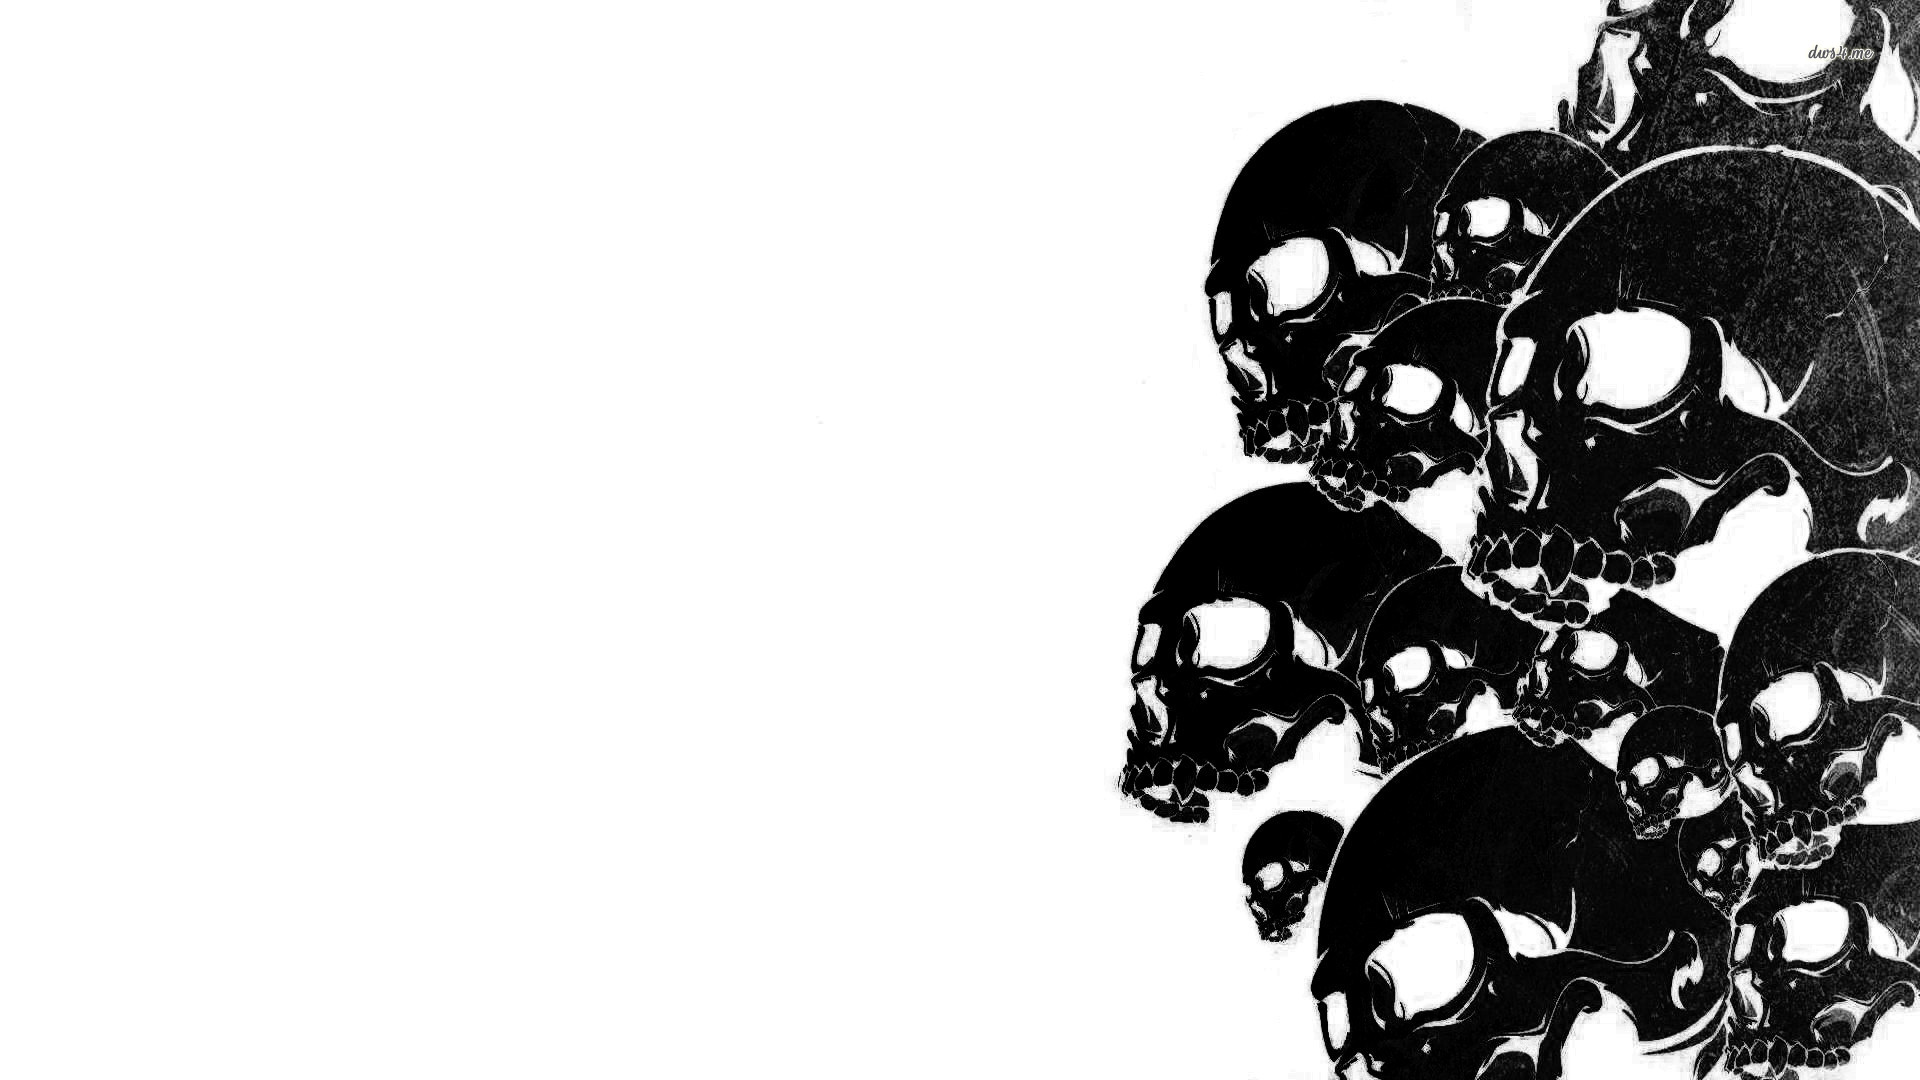 Free Download Black And White Skulls Wallpaper 1280x800 Black And